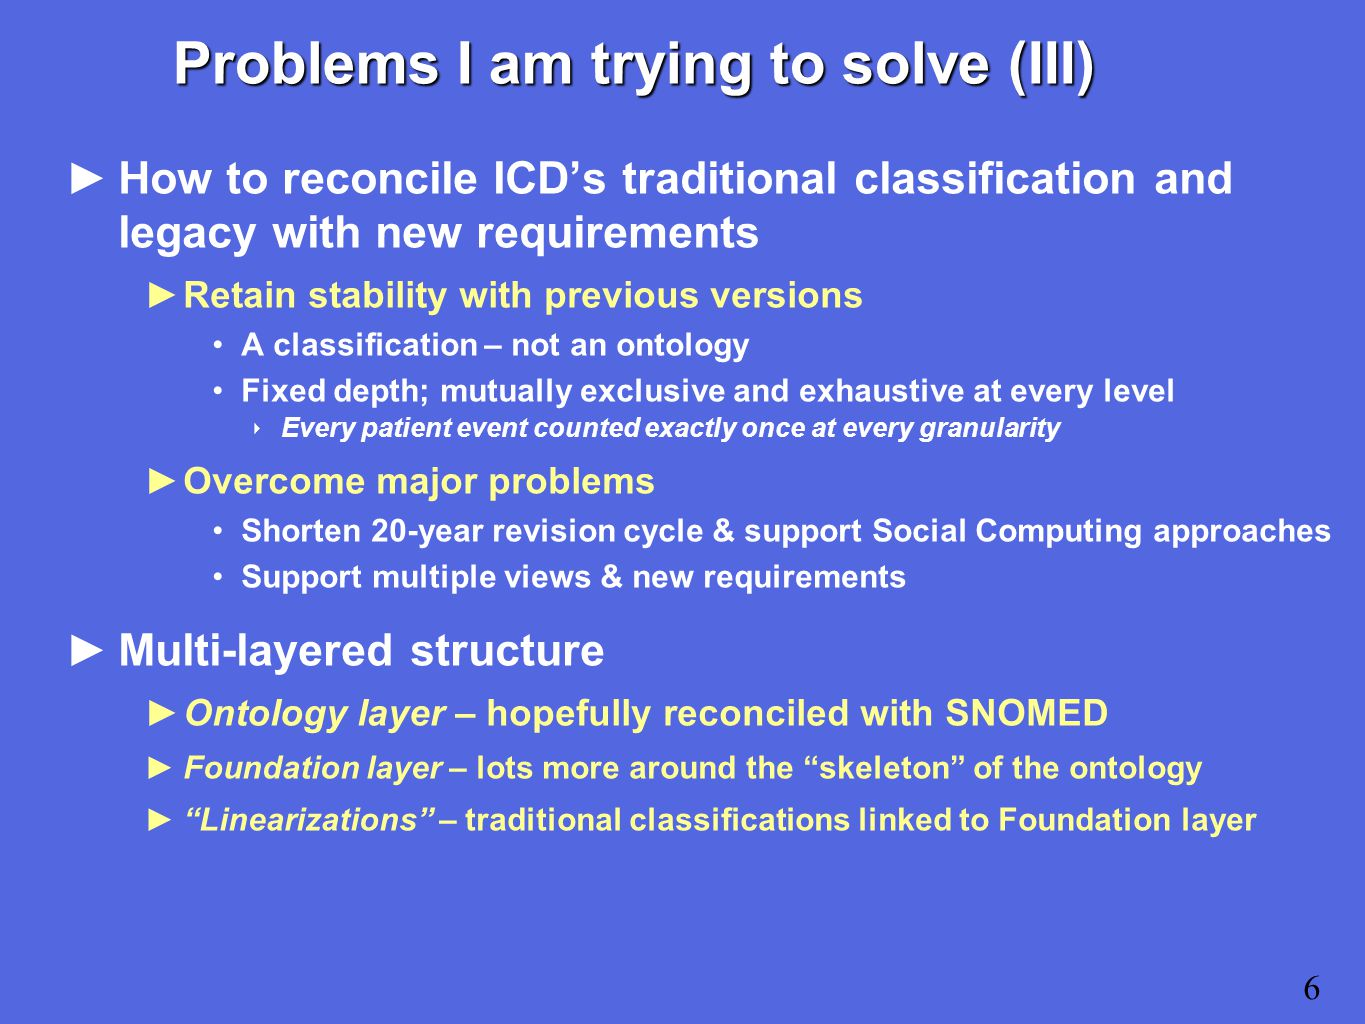 Problems I am trying to solve (III) ►How to reconcile ICD's traditional classification and legacy with new requirements ►Retain stability with previous versions A classification – not an ontology Fixed depth; mutually exclusive and exhaustive at every level ‣ Every patient event counted exactly once at every granularity ►Overcome major problems Shorten 20-year revision cycle & support Social Computing approaches Support multiple views & new requirements ►Multi-layered structure ►Ontology layer – hopefully reconciled with SNOMED ►Foundation layer – lots more around the skeleton of the ontology ► Linearizations – traditional classifications linked to Foundation layer 6